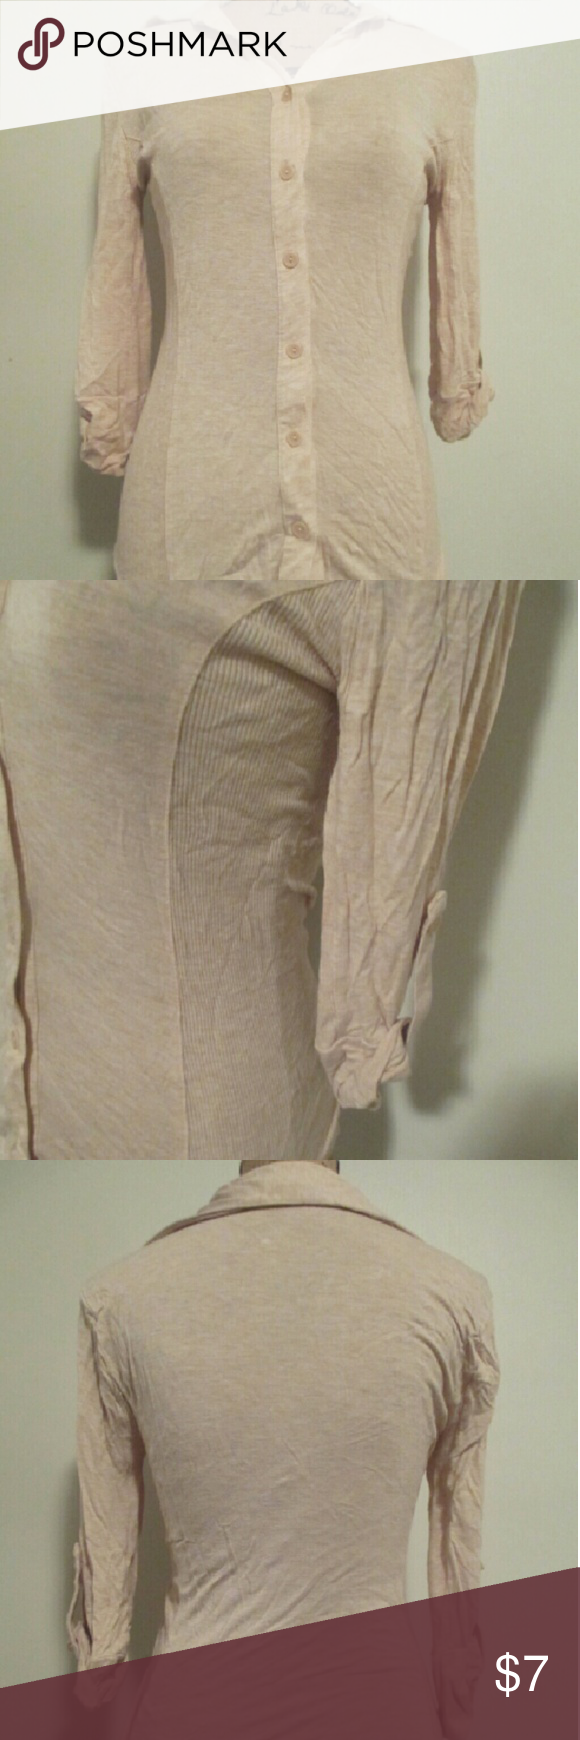 Cream button down shirt Cream 3 quarter sleeve button down shirt. Only been worn a couple times. No holes no stains Zenana Outfitters Tops Button Down Shirts